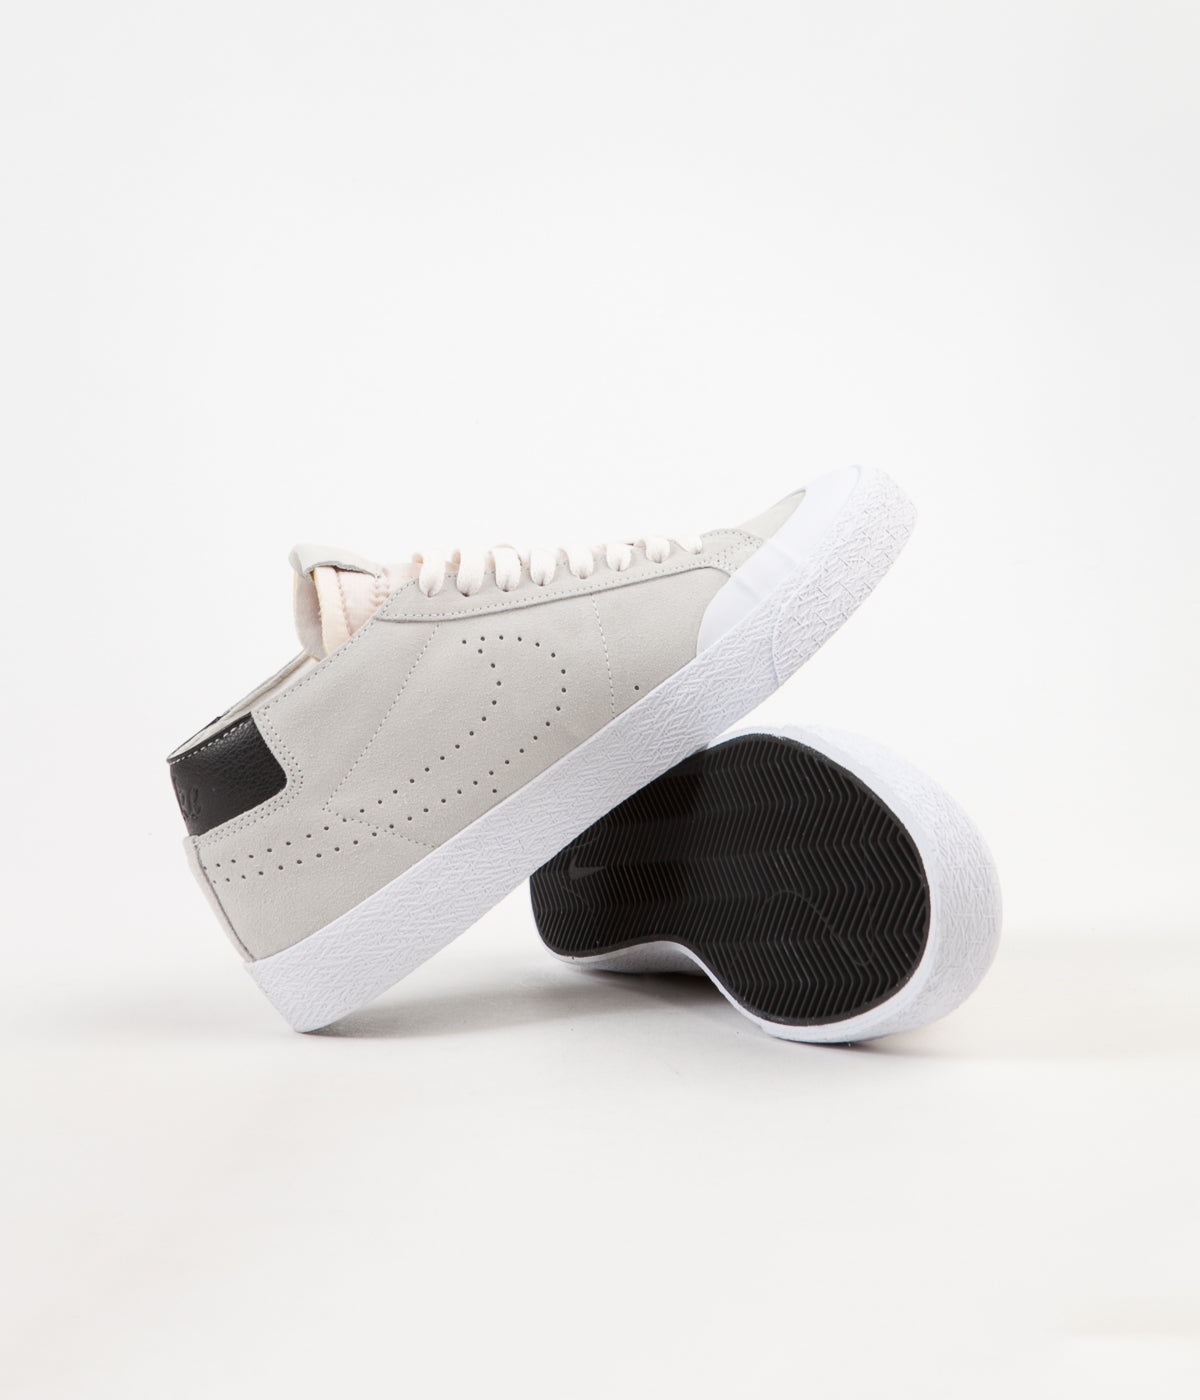 Nike SB Blazer Chukka XT Shoes - Phantom / Phantom - Black